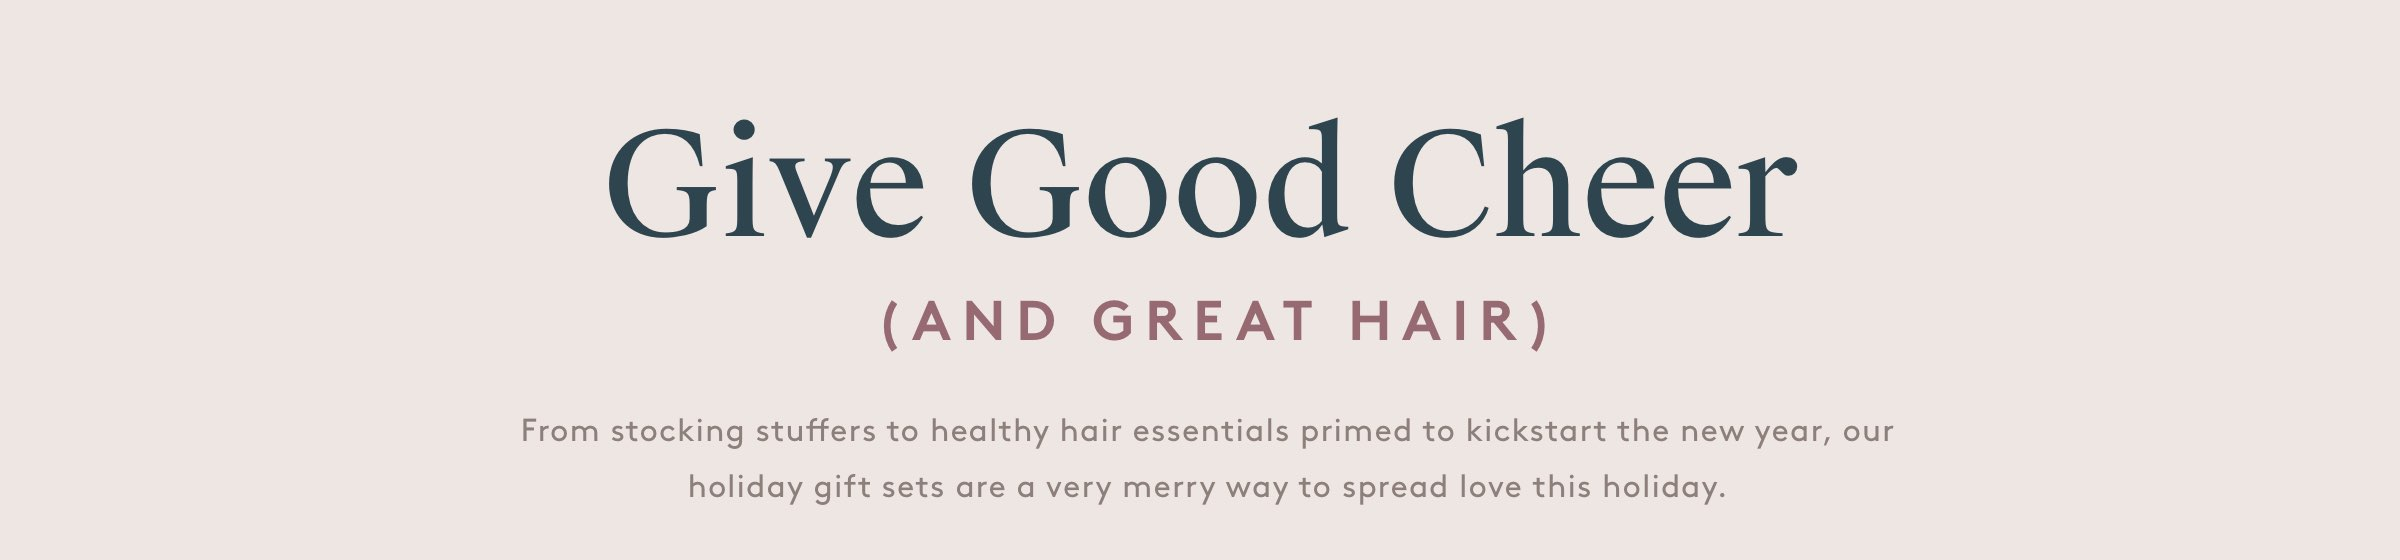 Give Good Cheer (And Great Hair)